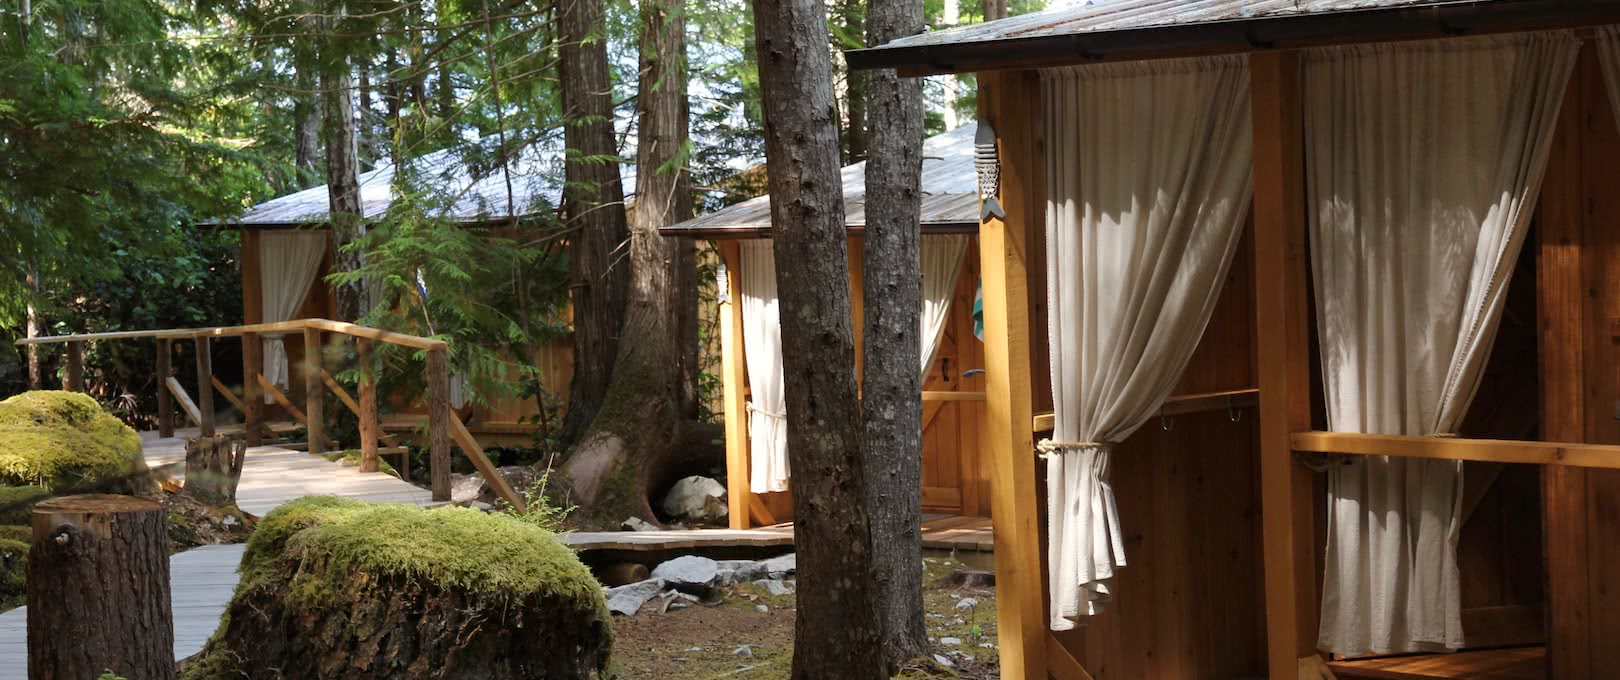 The cabanas at the eco resort are comfortable, handcrafted, and warm